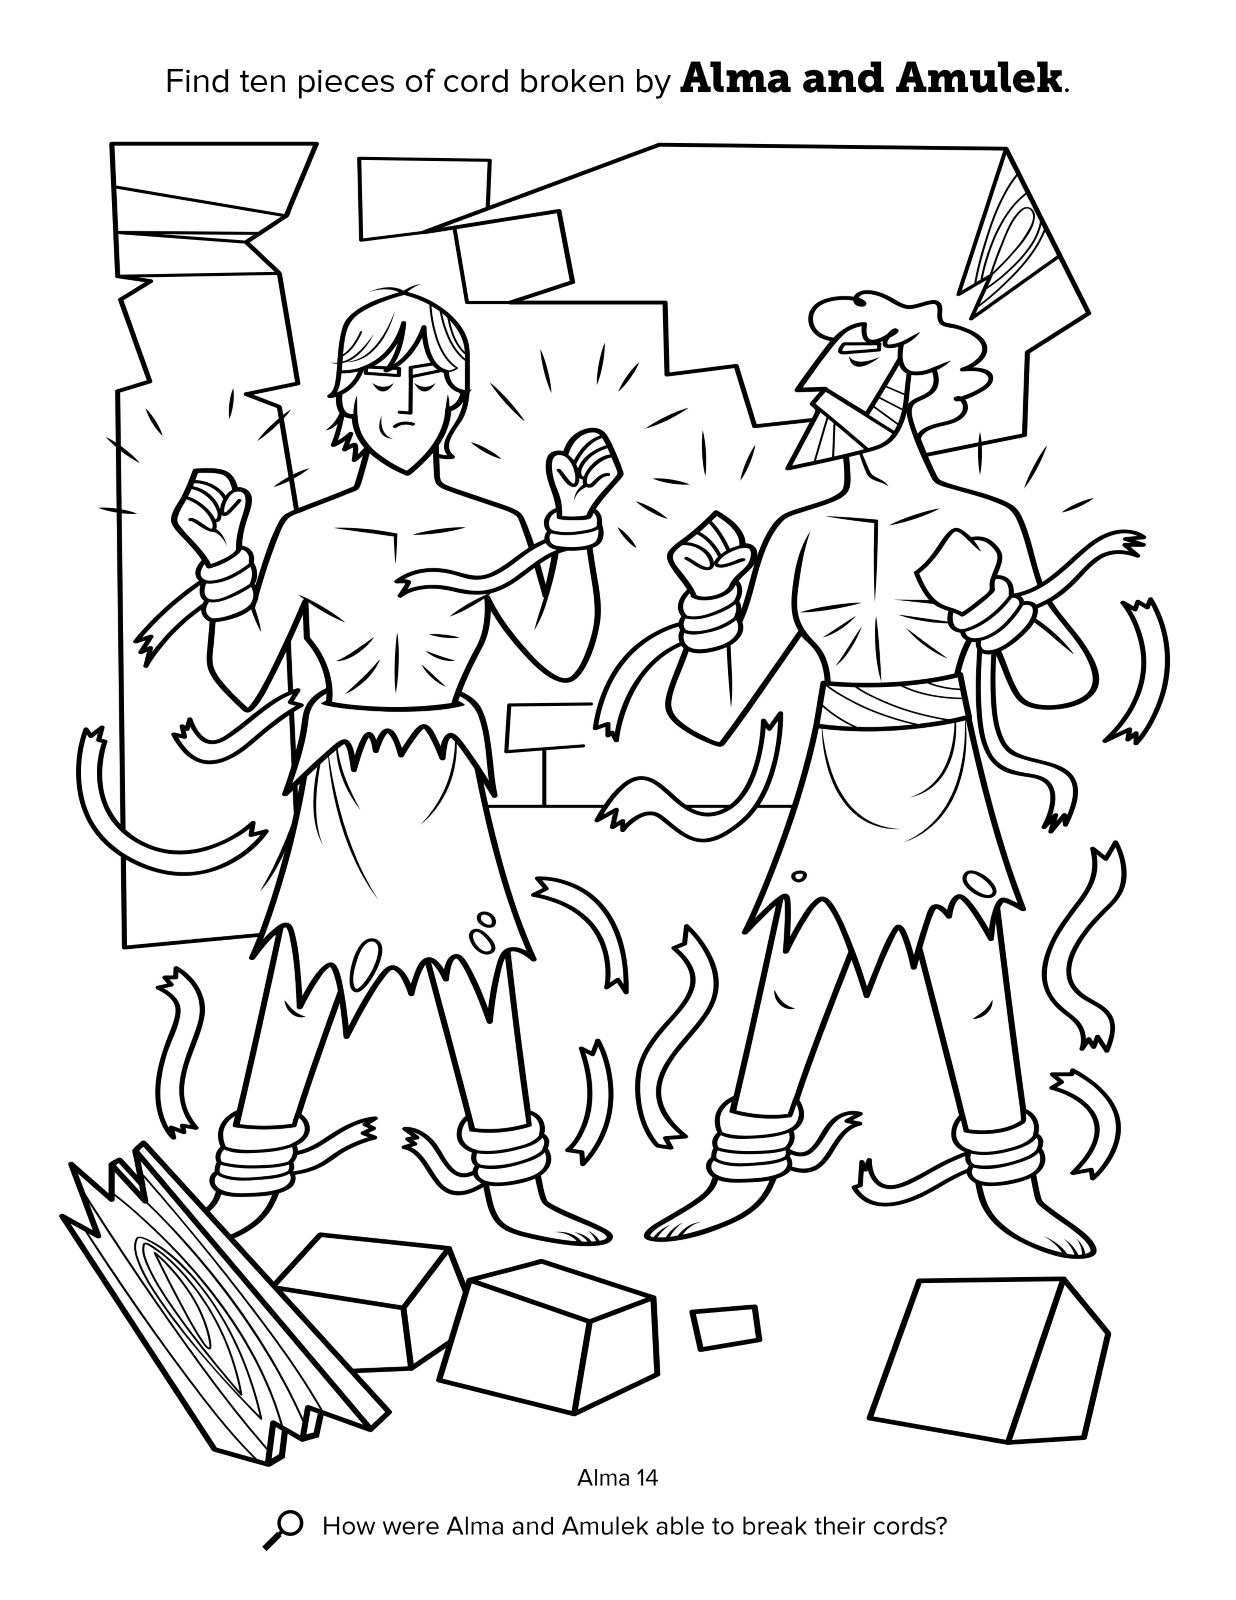 Book Of Mormon Heroes Coloring Pages - Worksheet & Coloring Pages